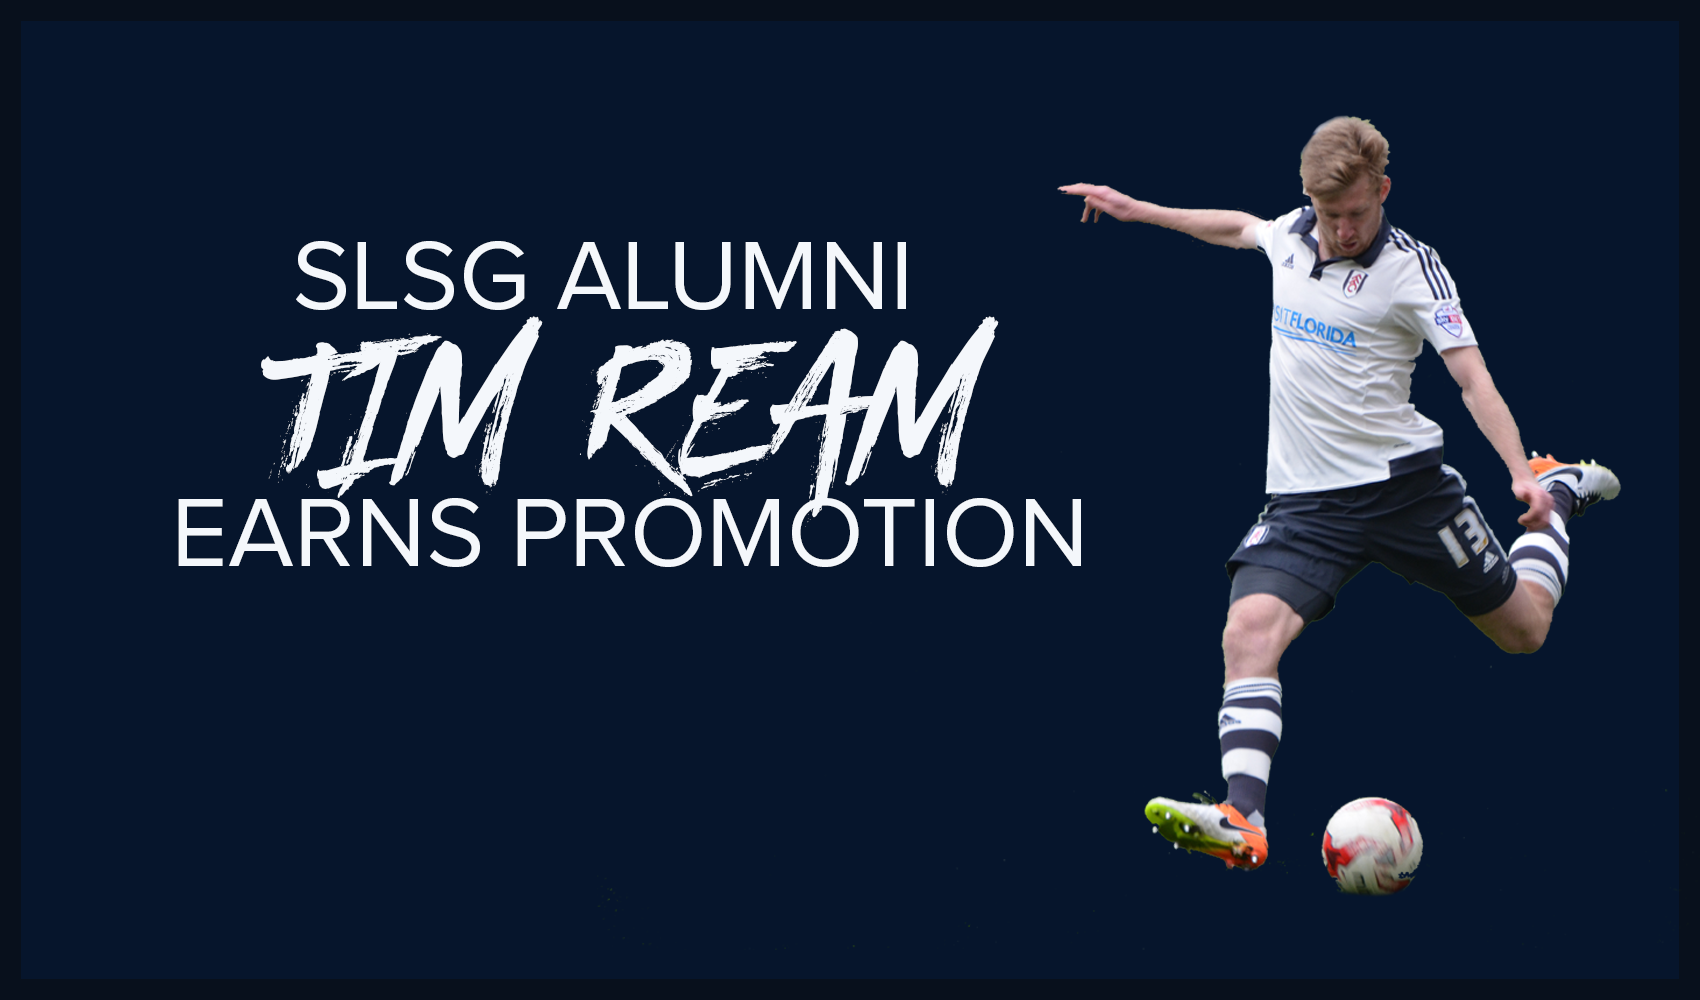 SLSG Alumni Tim Ream Earns Promotion